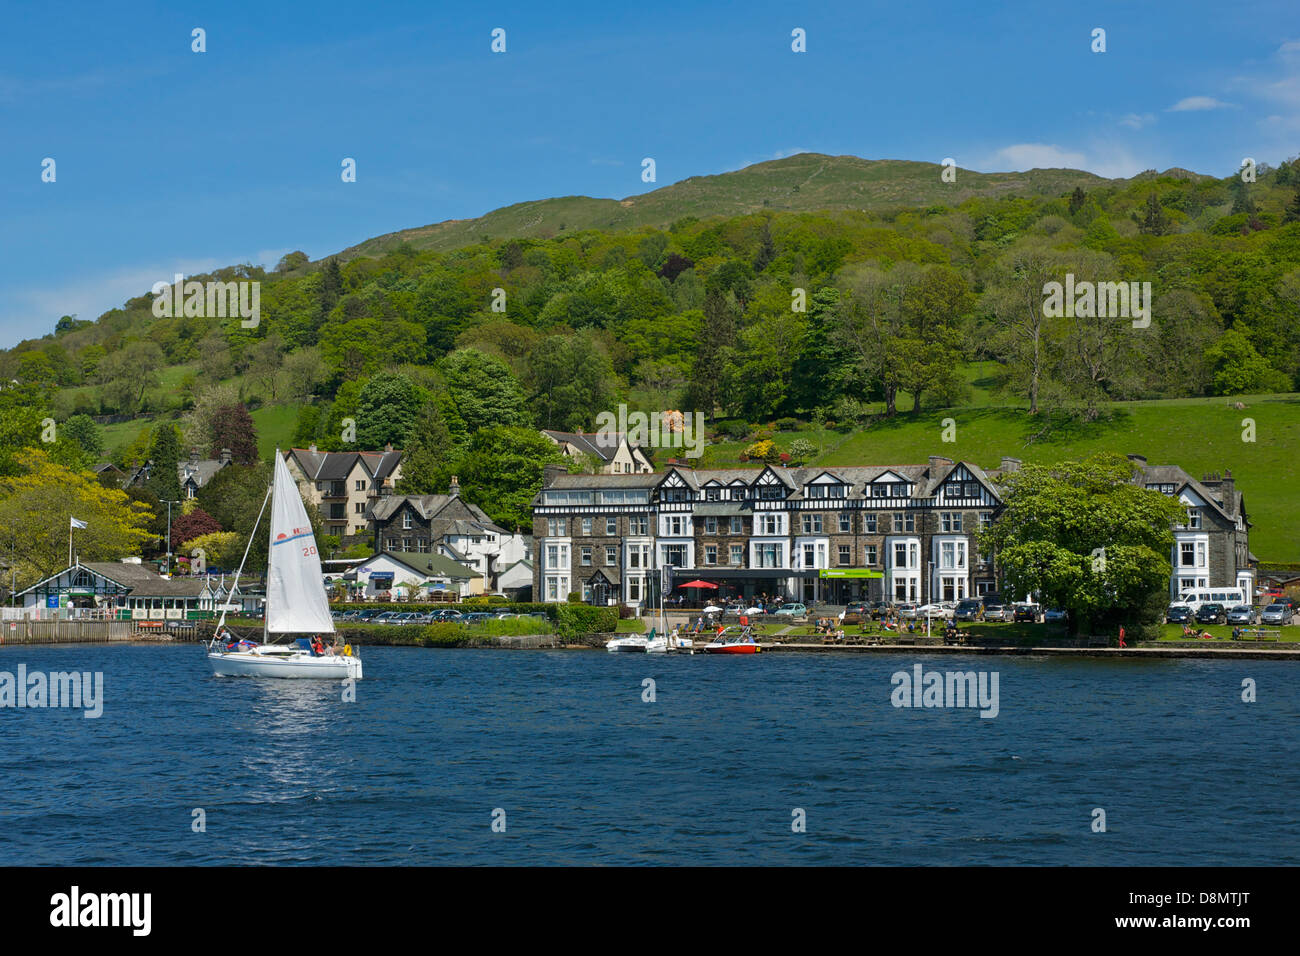 Ambleside Youth Hostel at Waterhead, Lake Windermere, Lake District National Park, Cumbria, England UK - Stock Image